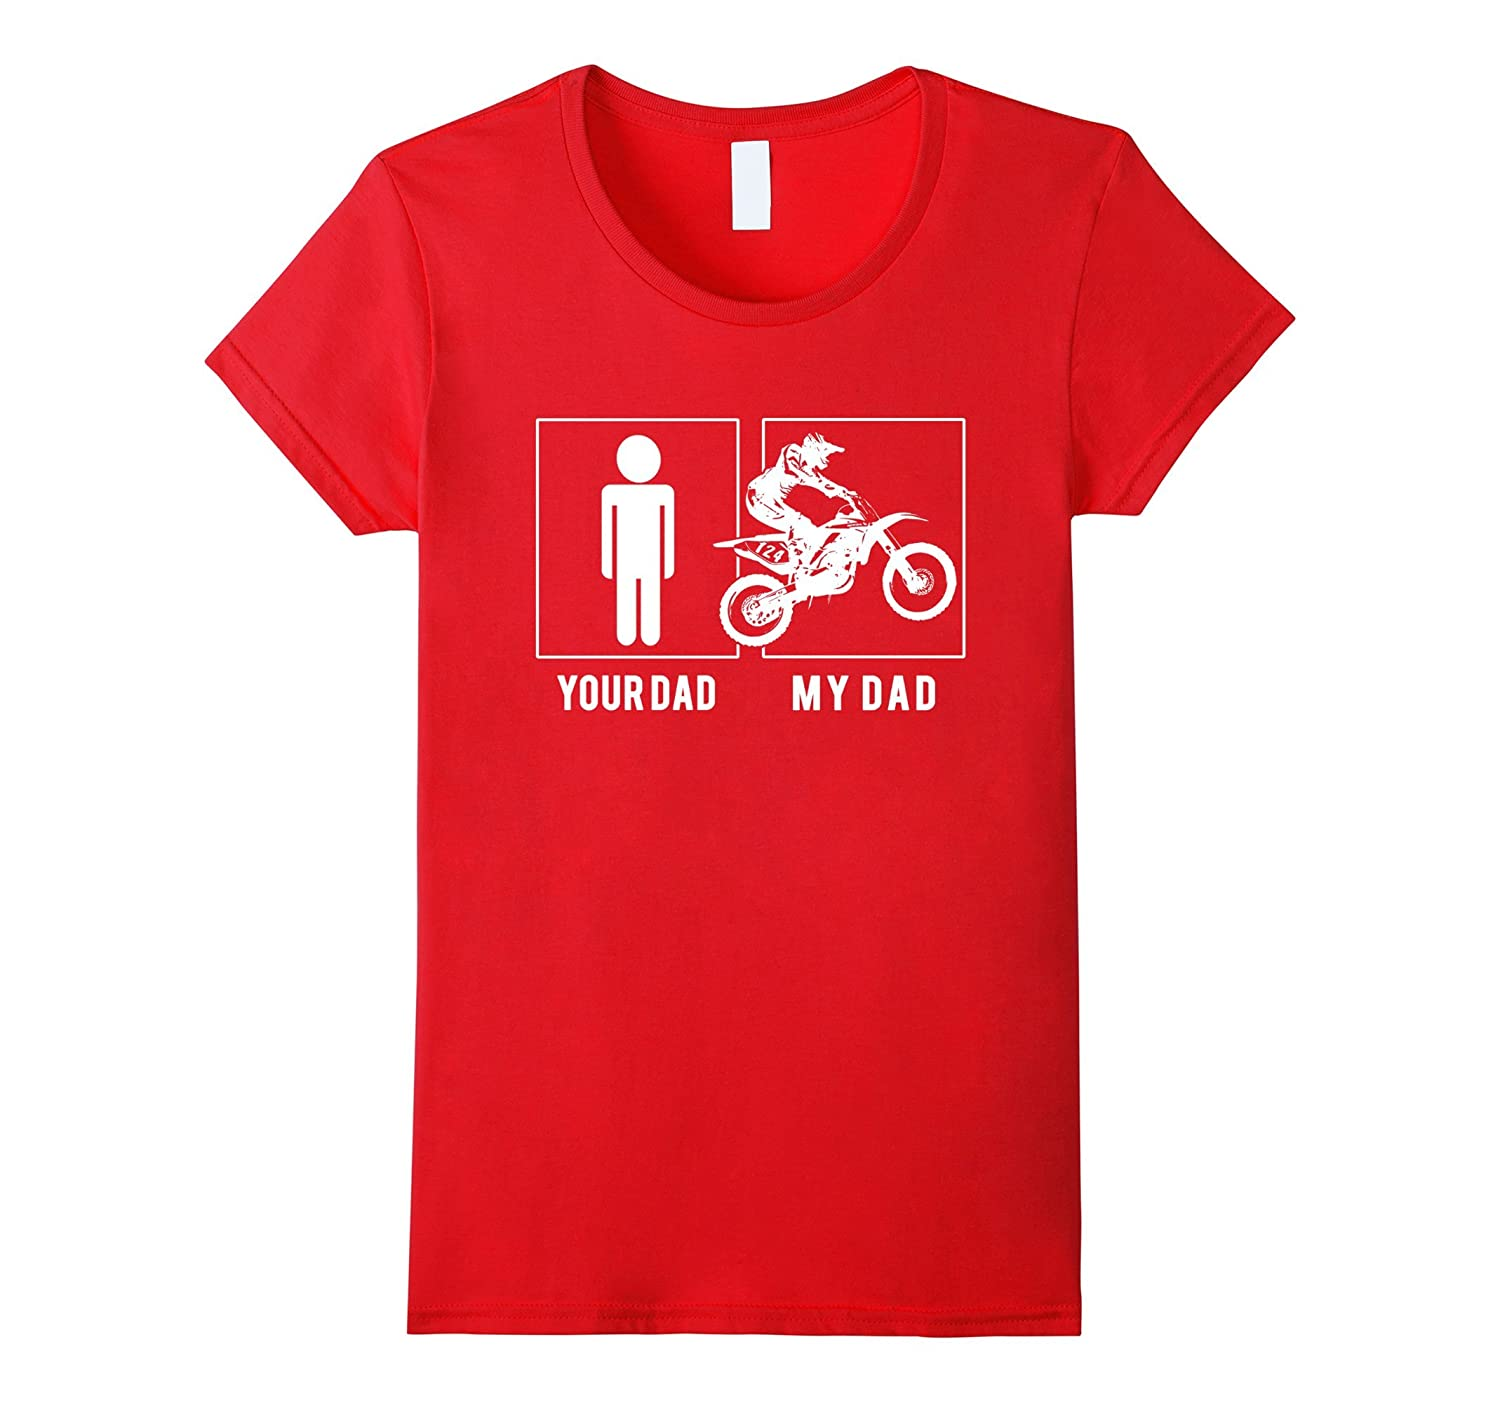 DIRT BIKER – YOUR DAD – MY DAD T SHIRT FATHER'S DAY